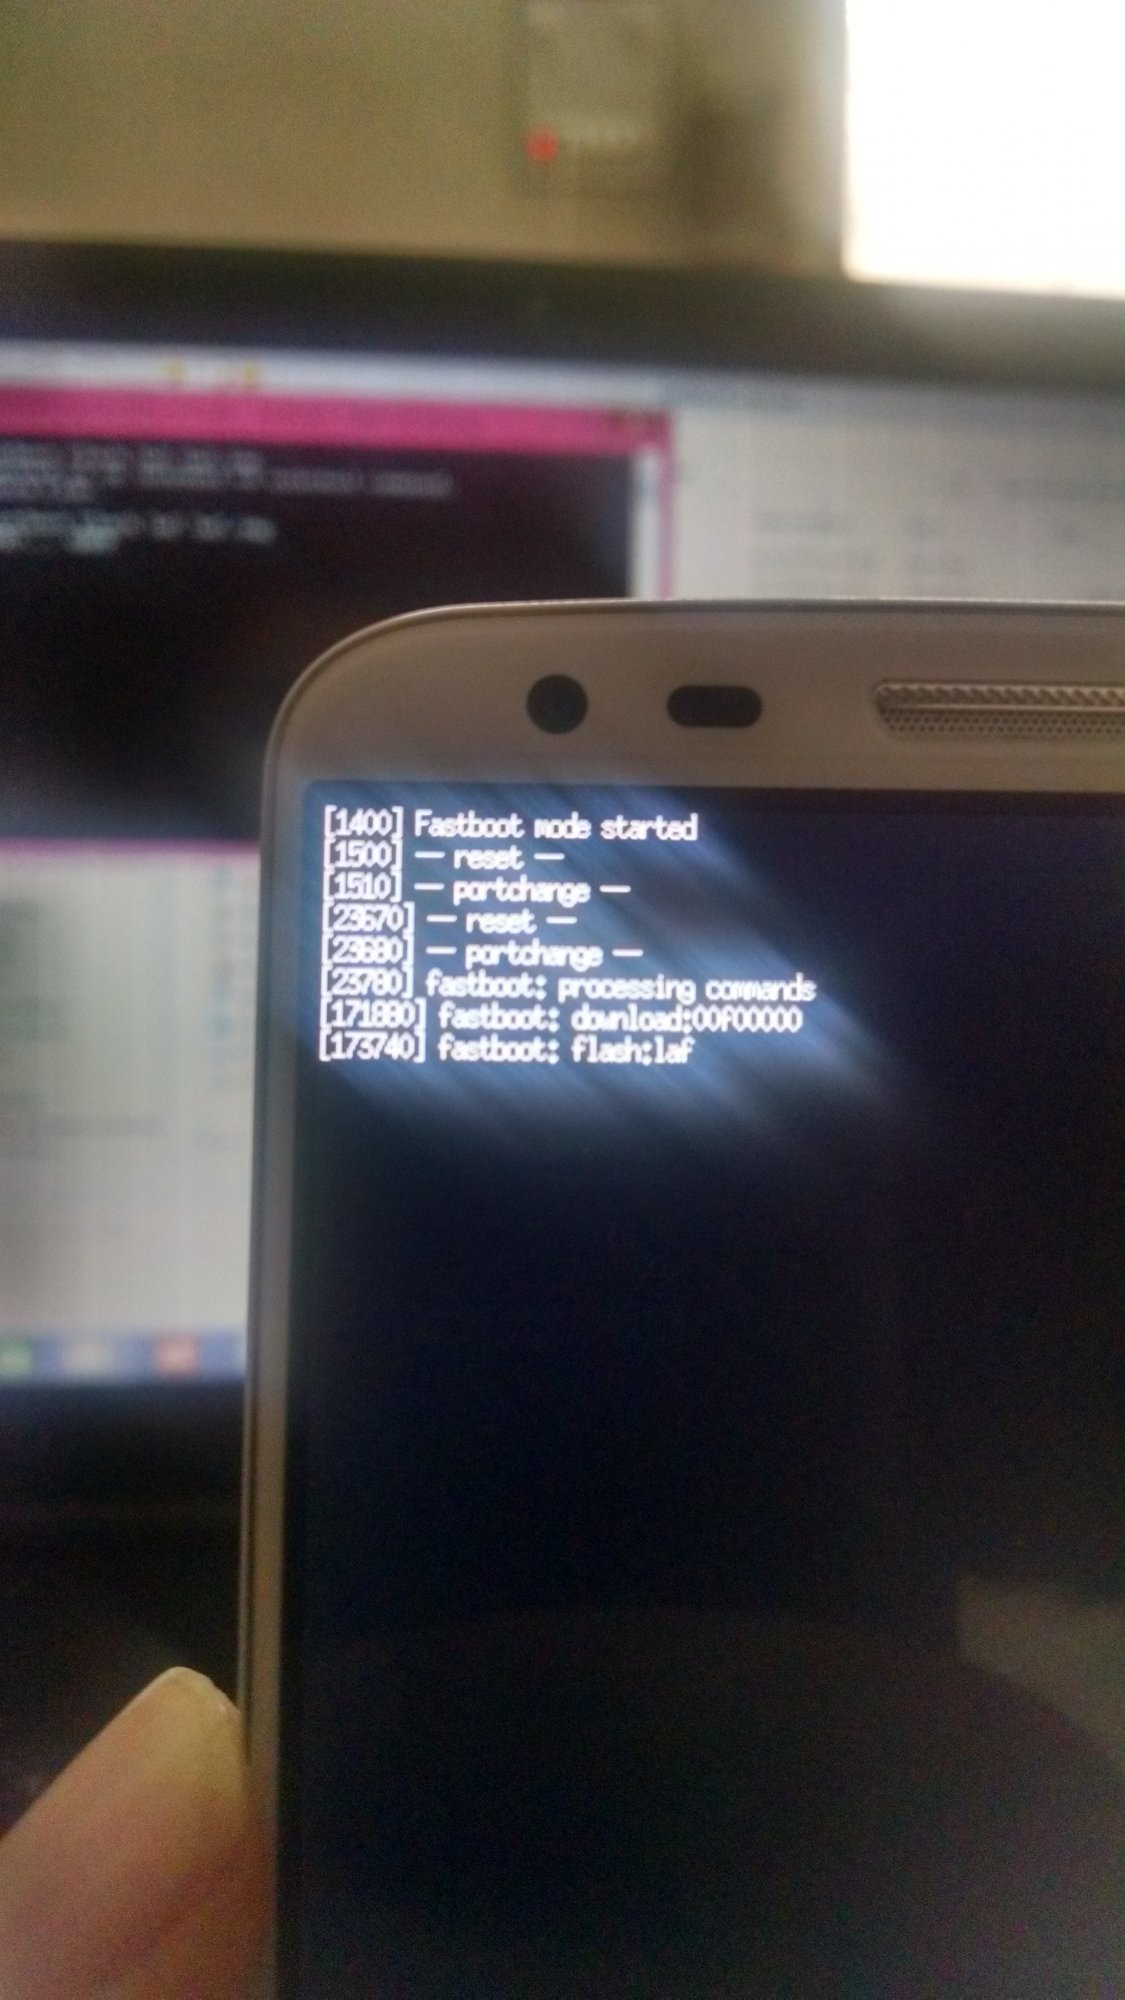 Sprint] LG G2 Stuck in fastboot mode  PLEASE HELP! - LG G2